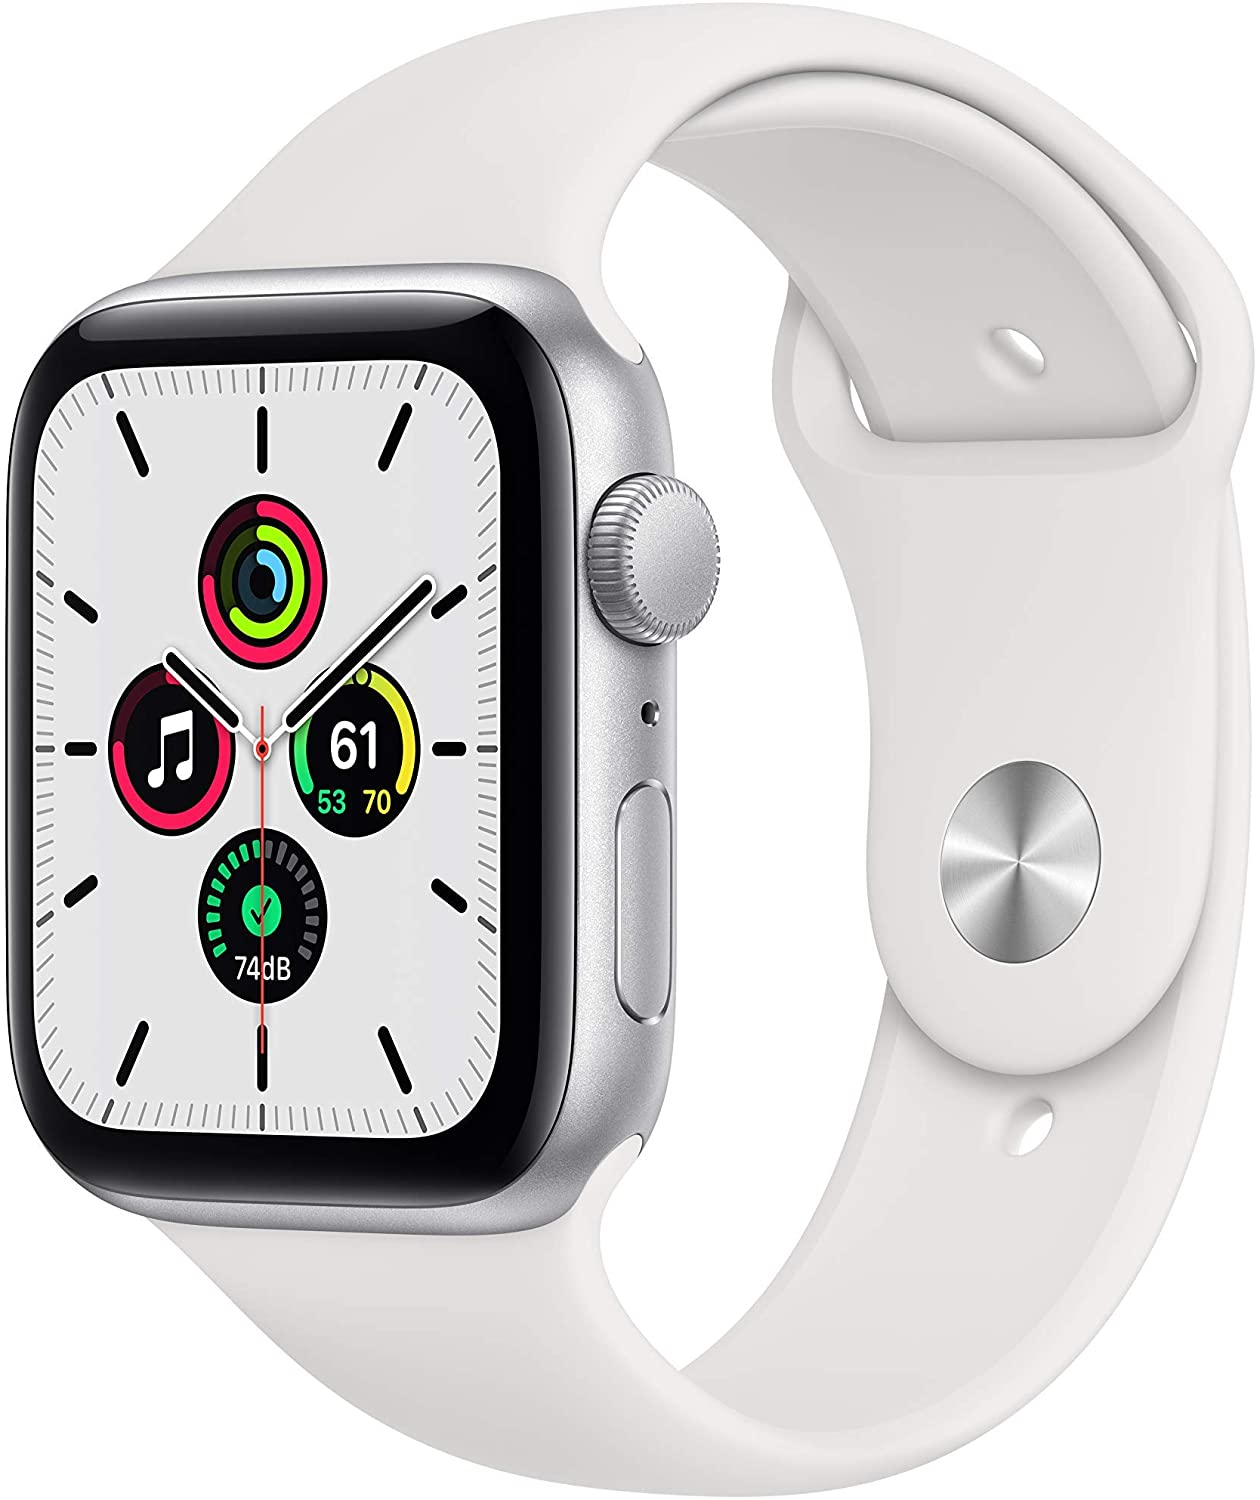 New Apple Watch SE (GPS, 44mm) - Silver Aluminum Case with White Sport Band (Renewed)